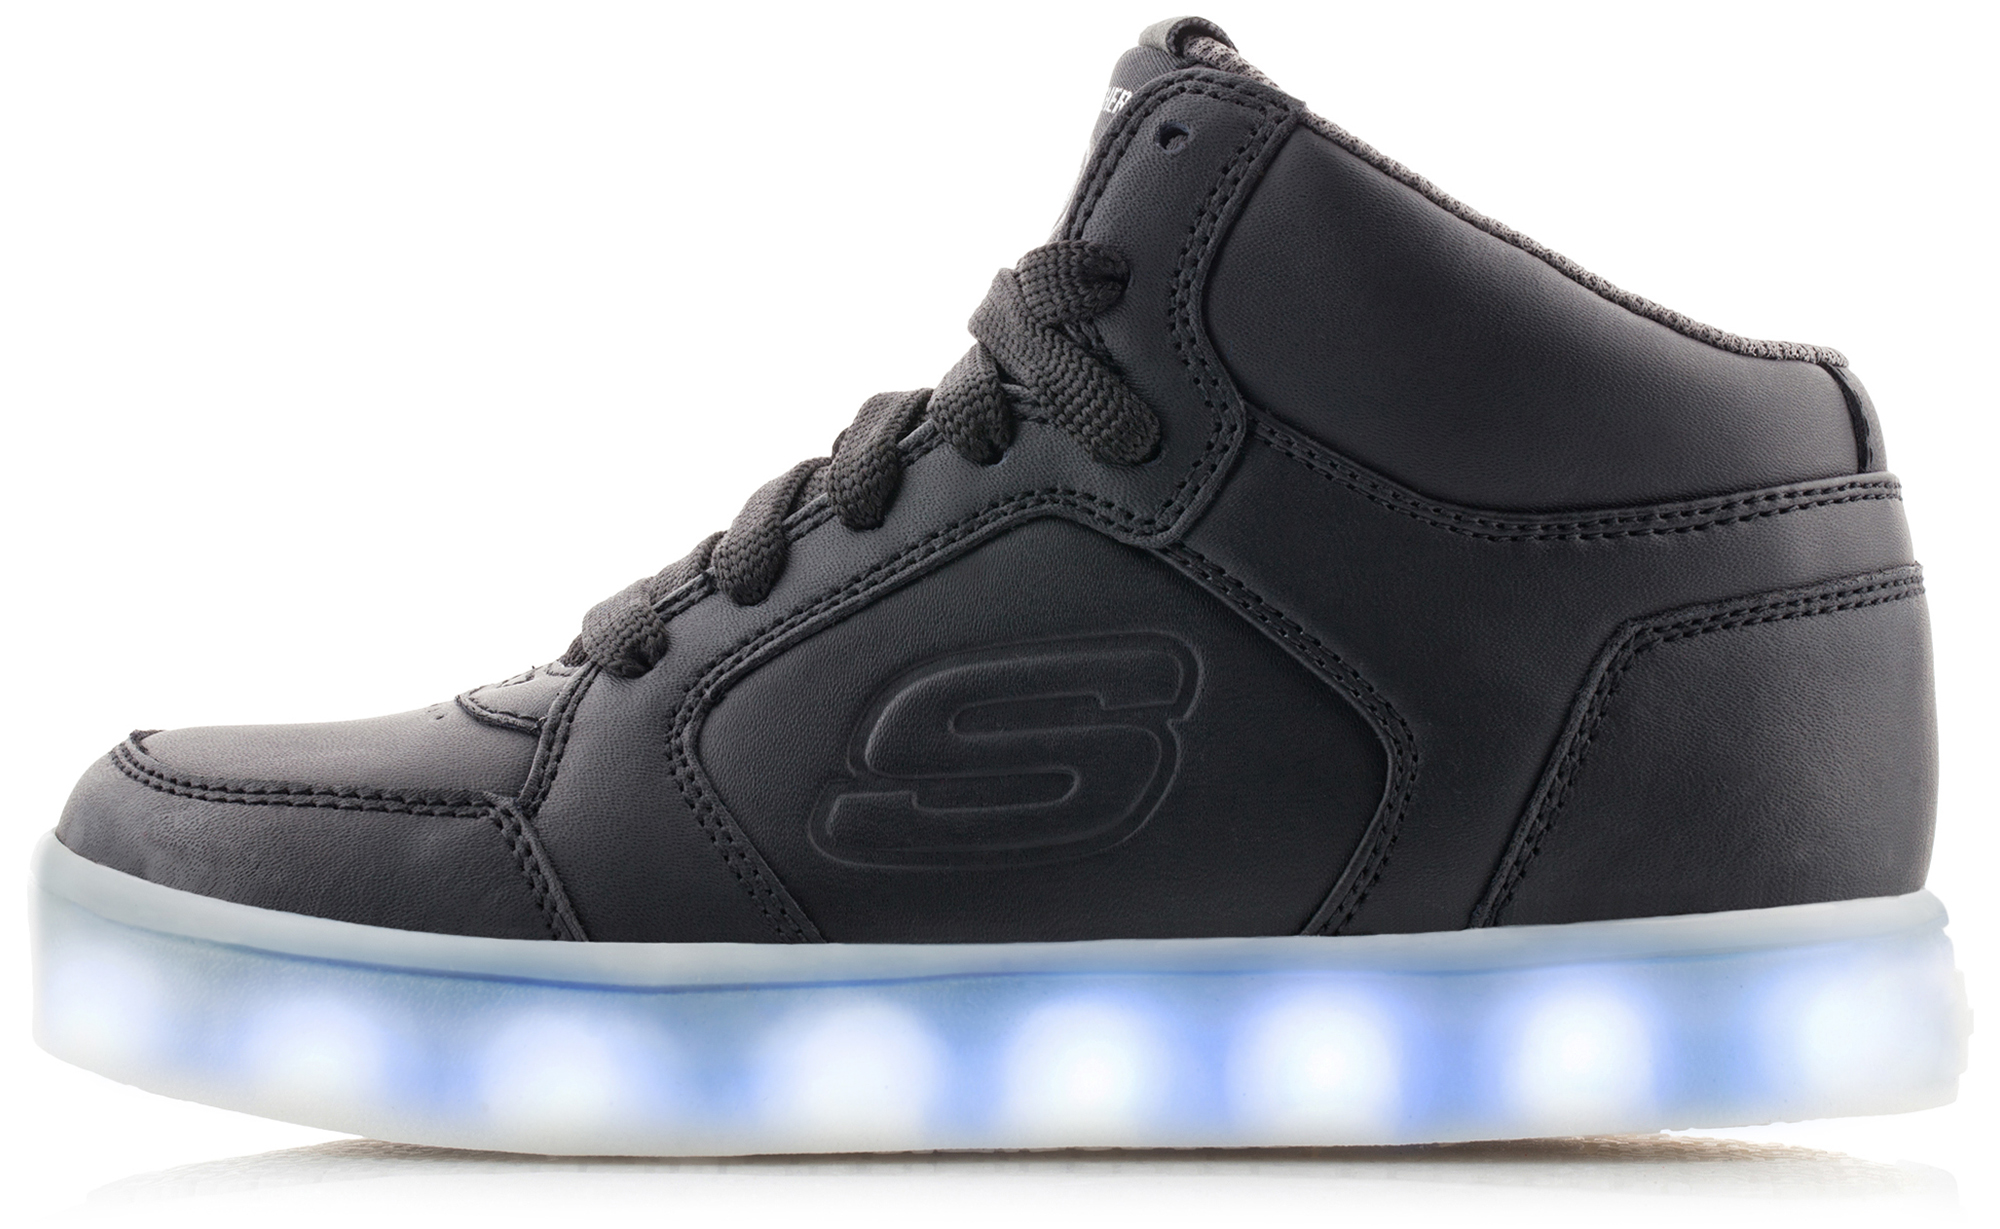 Skechers Кеды детские Skechers Energy Lights skechers energy light